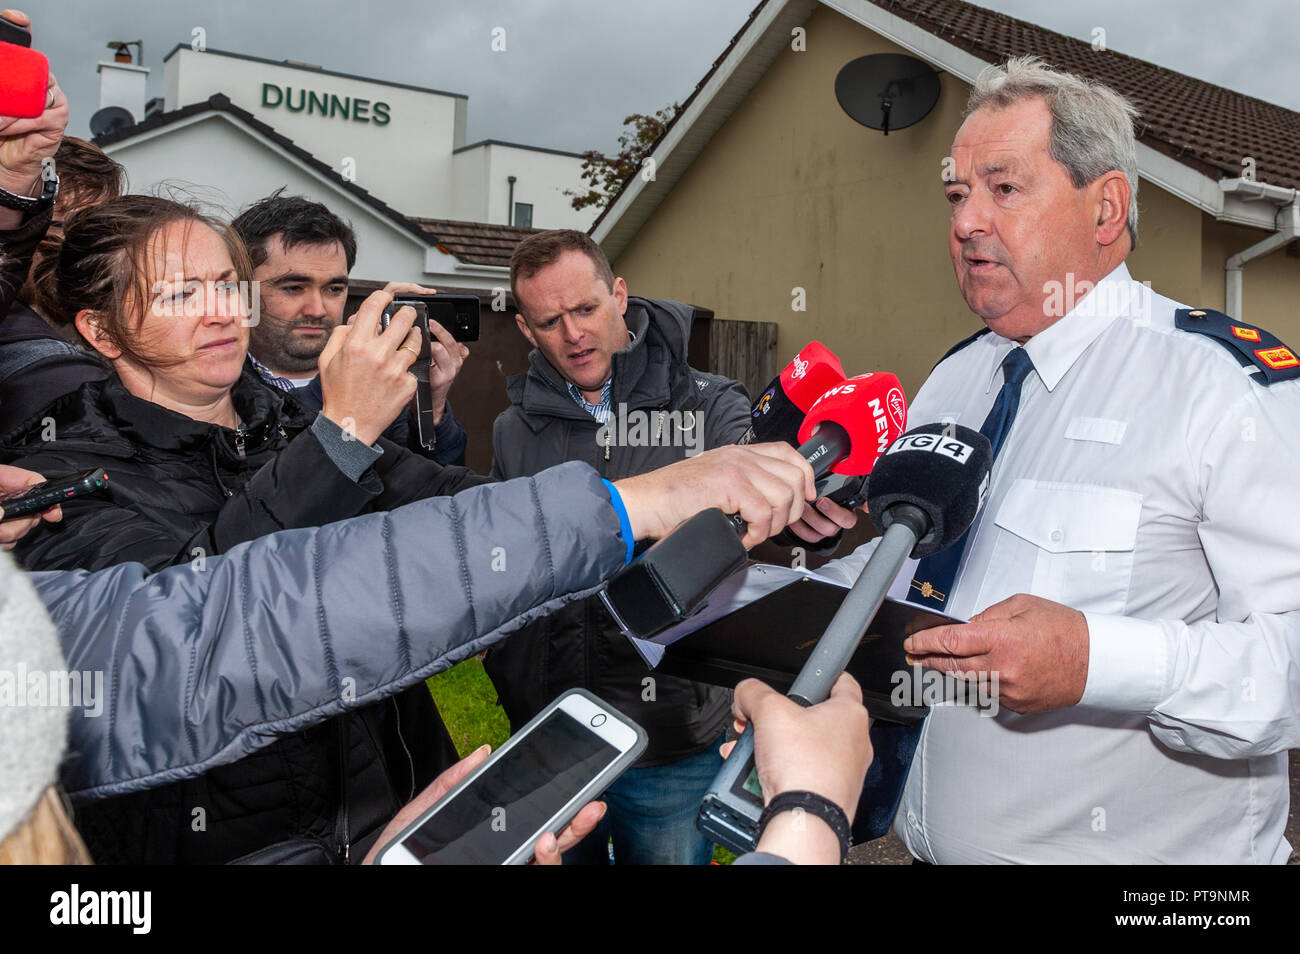 Macroom, West Cork, Ireland. 8th Oct, 2018. Garda Superintendent Michael Fitzpatrick from Macroom Garda Station give a press conference at the scene of a fatal stabbing in Dan Corkery Place, Macroom. The State Pathologist is due on the scene at 4pm today. Credit: Andy Gibson/Alamy Live News. Stock Photo